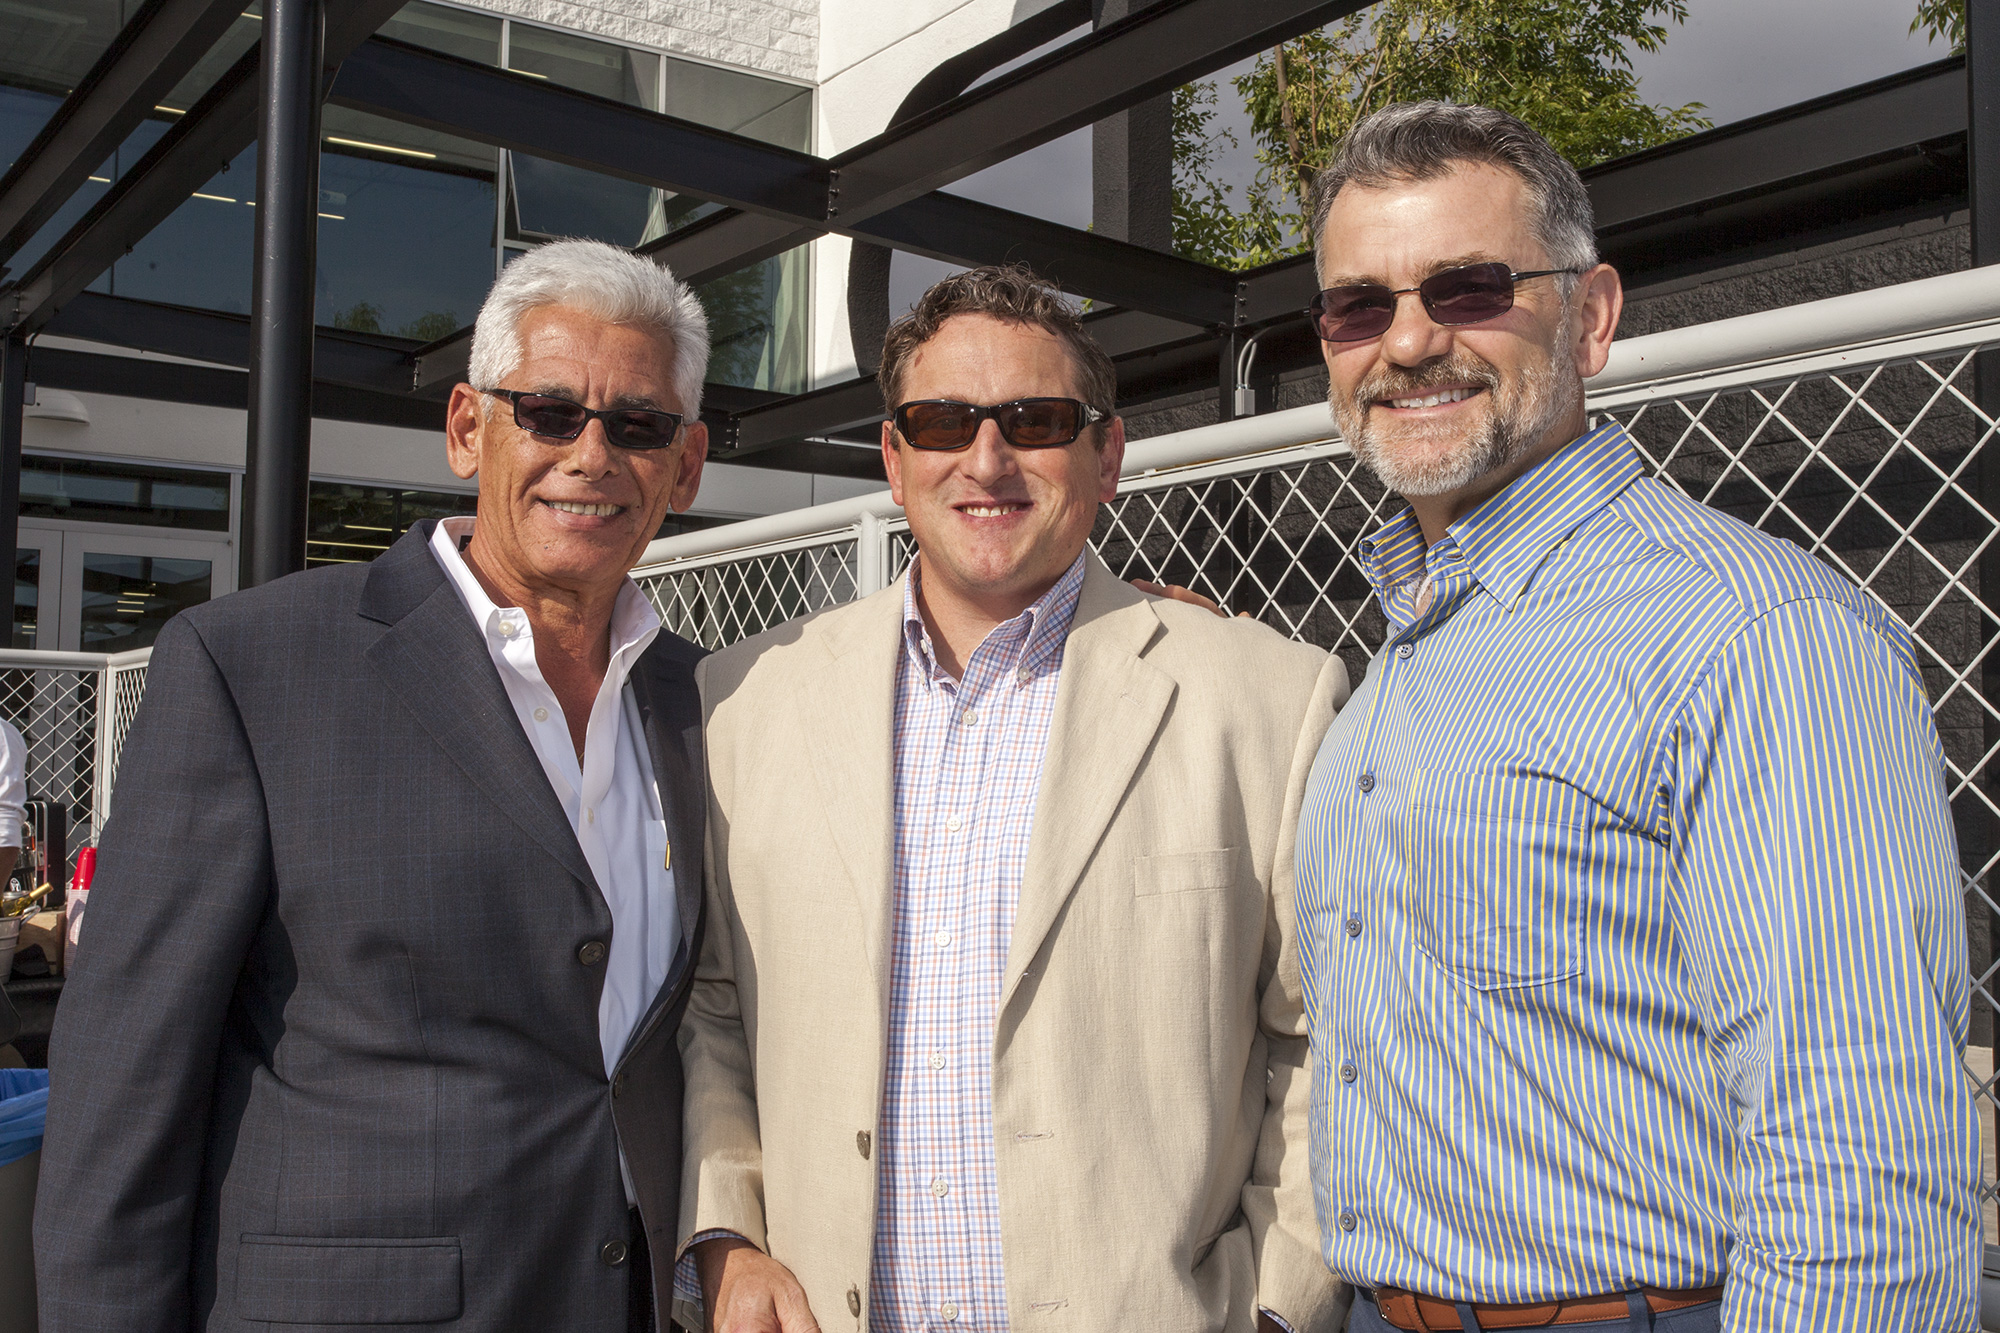 George Falardeau, Rollin Homer, and Rich Haluschak at the 870 opening party